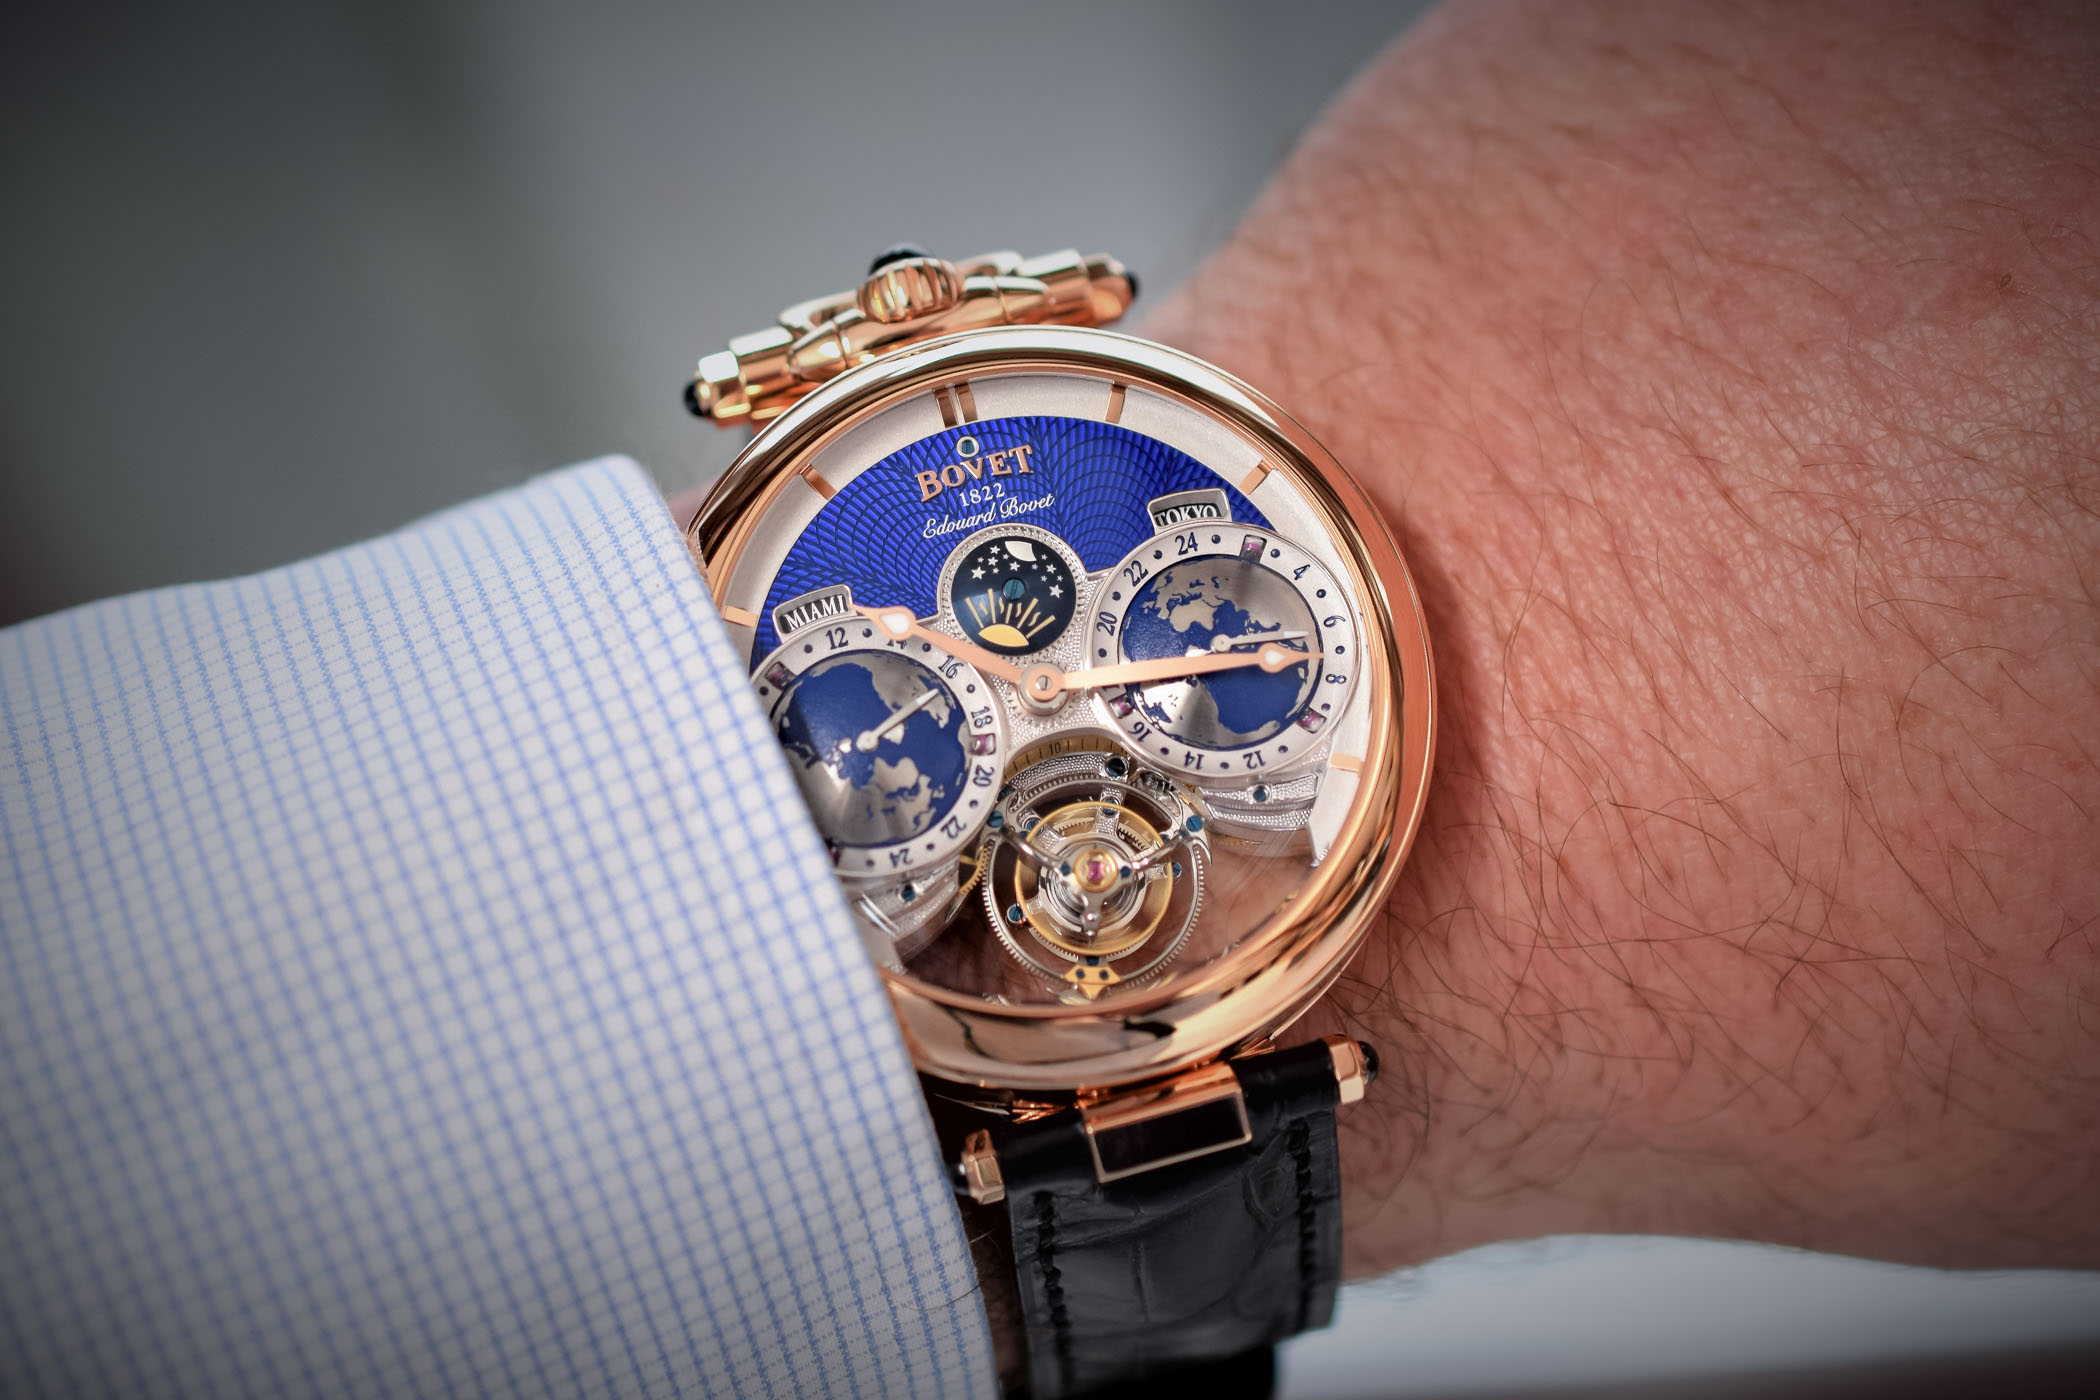 hands less eight exceptional watches displays simultaneously complications drives base eb than efficiency fleurier ensuring edouard movement tourbillon three and the bovet hemispherical grandes web for no continuously timepiece an